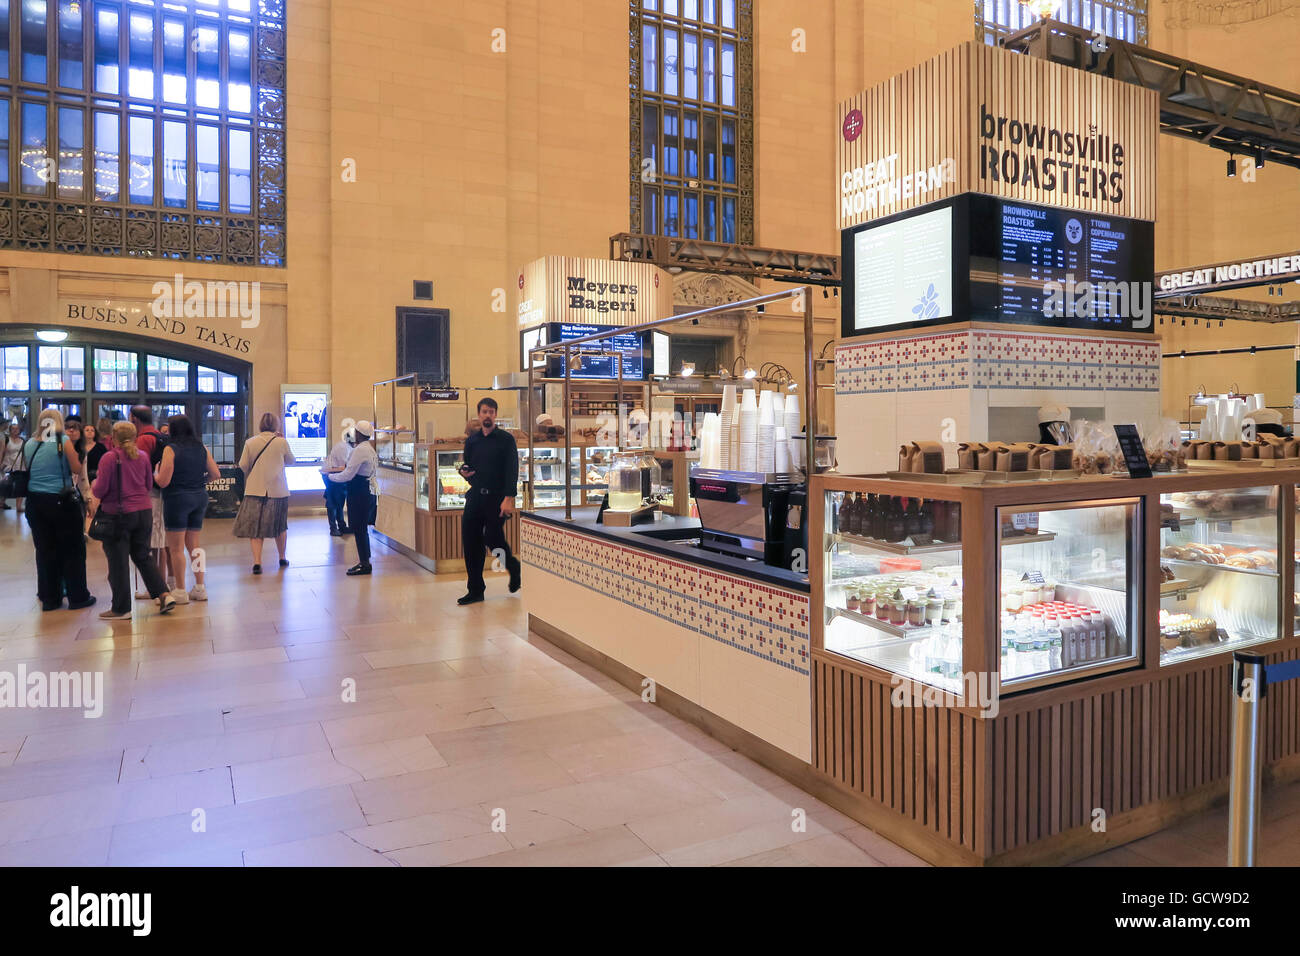 Great Northern Food Hall Great Northern Food Hall In Grand Central Terminal Nyc Usa Stock